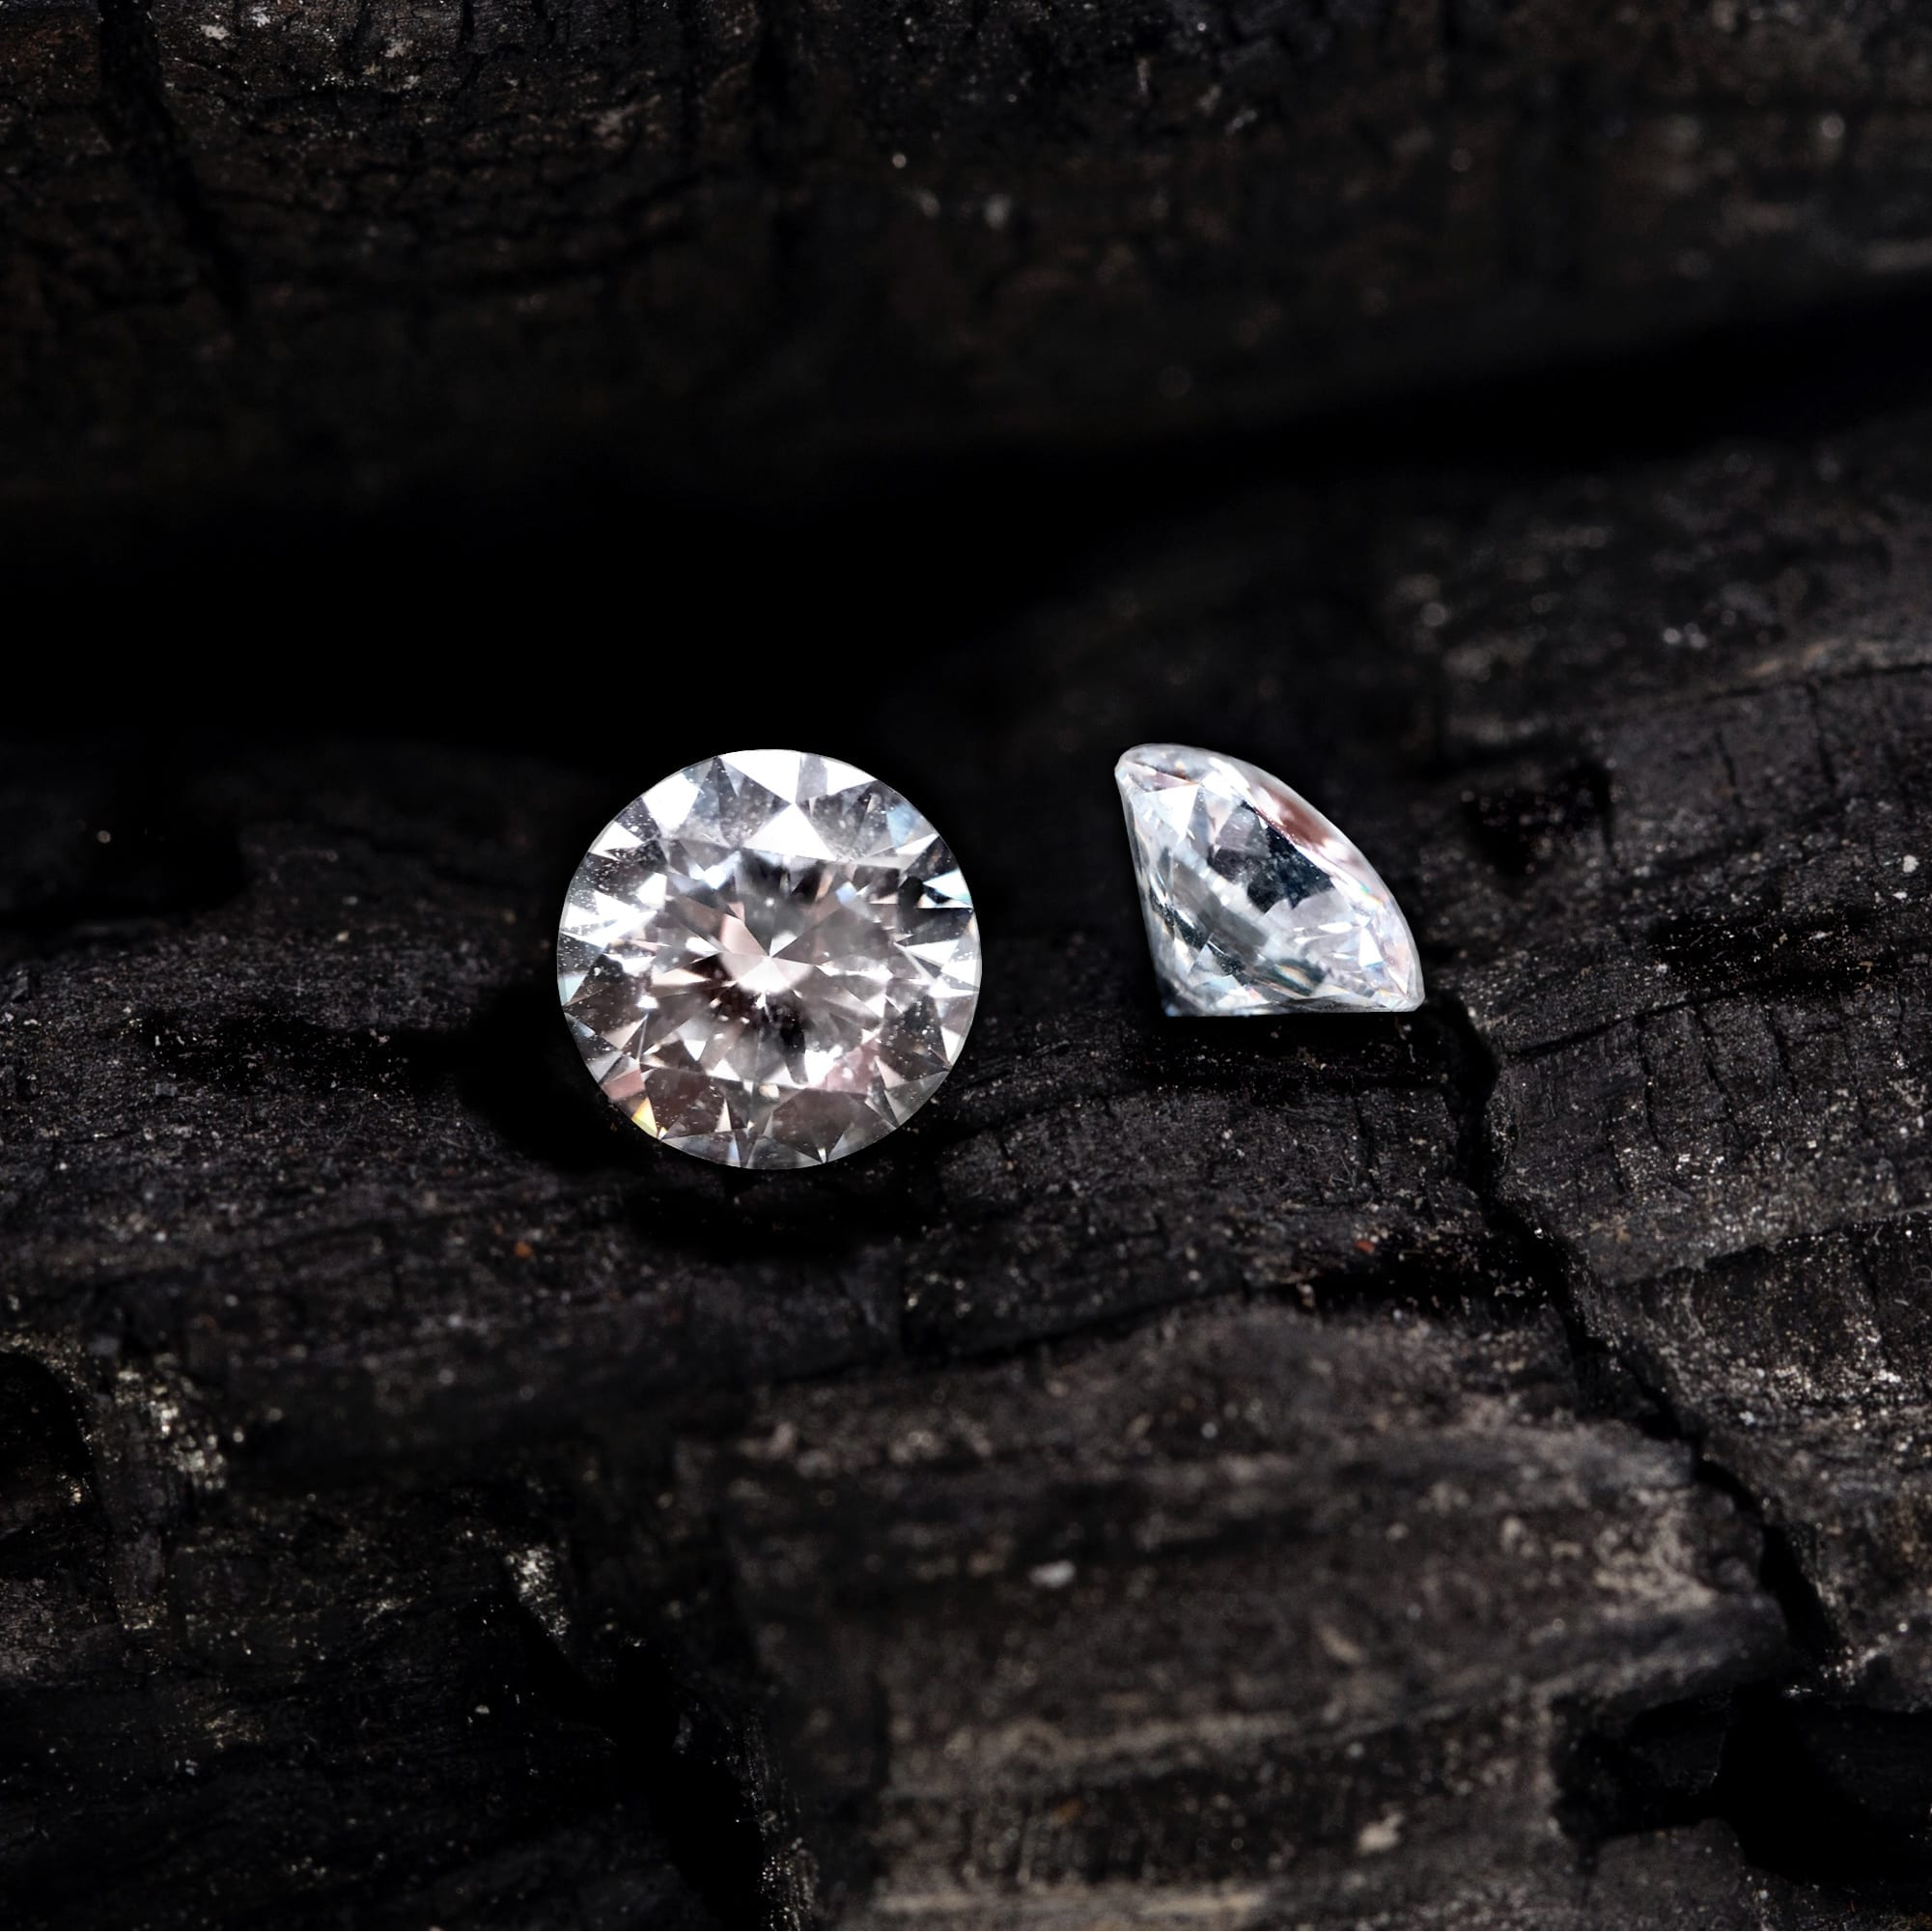 A picture of two round diamonds on black coal